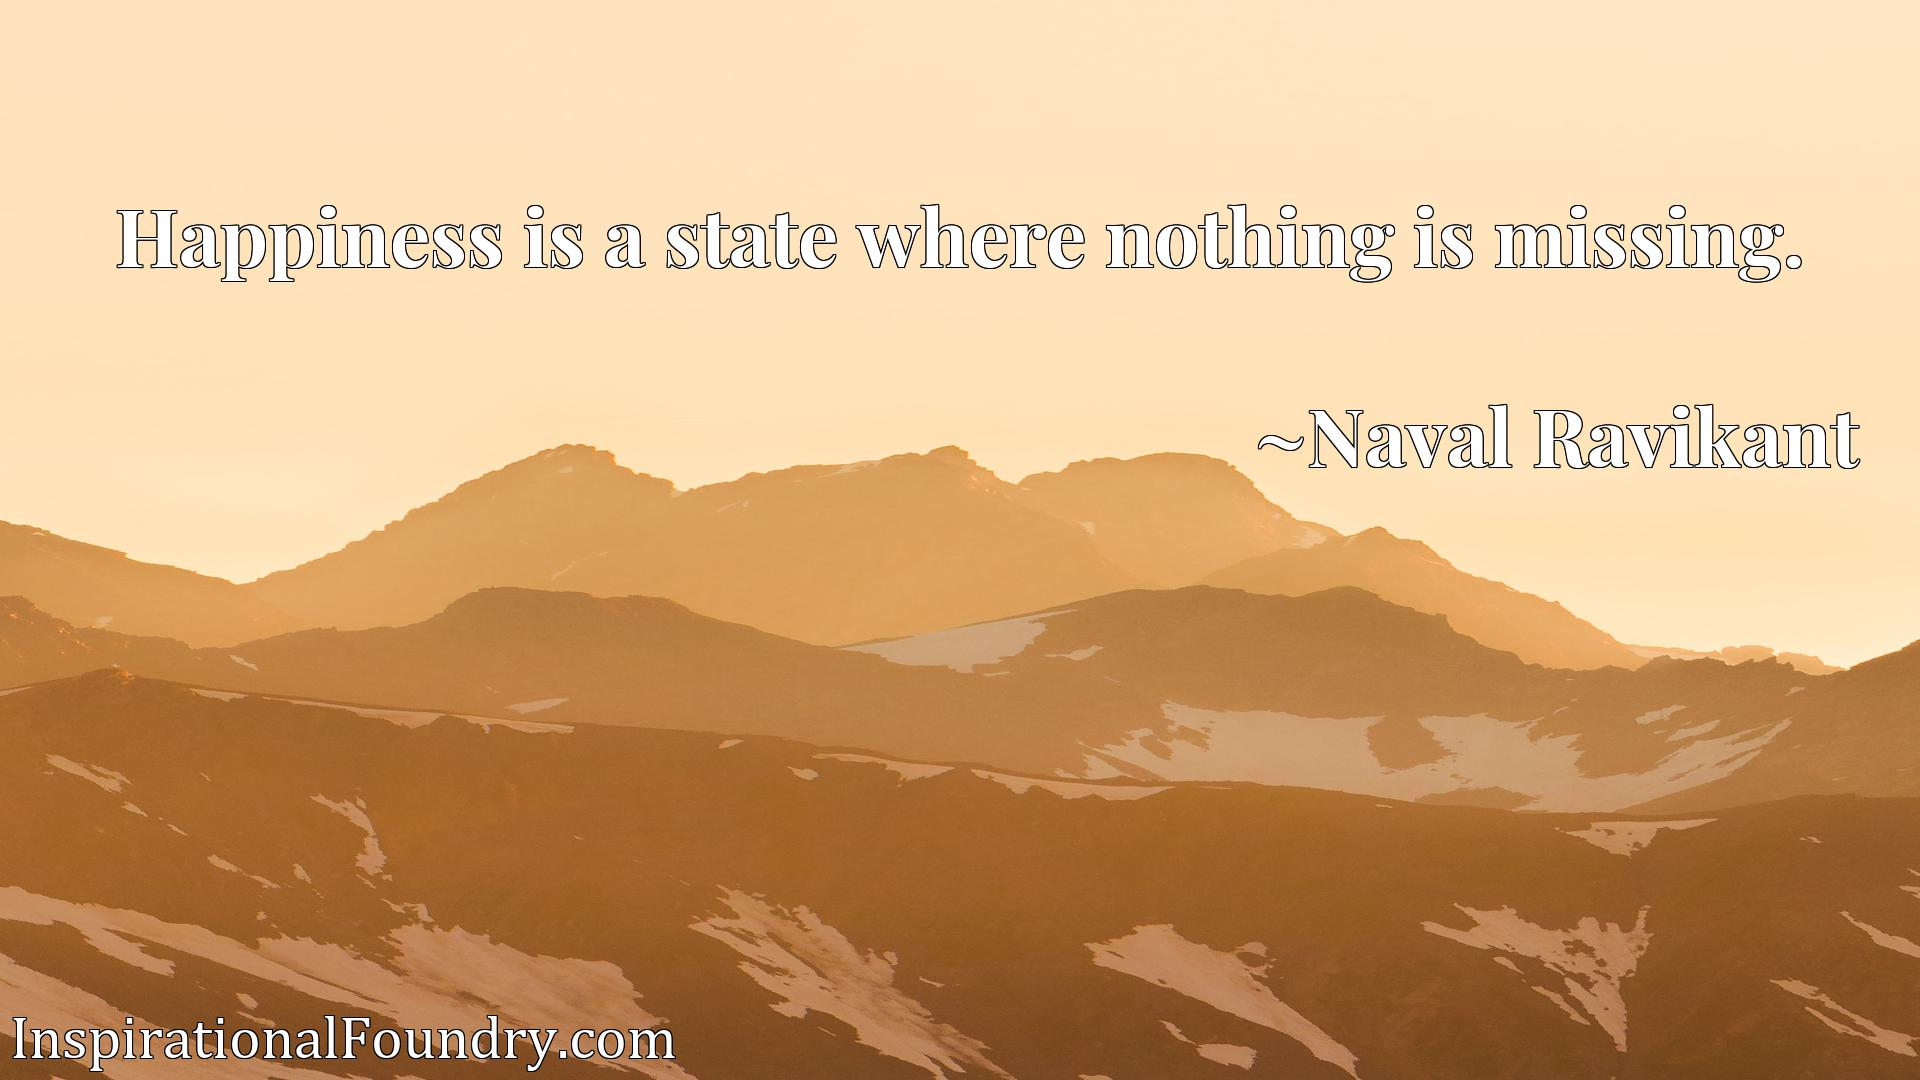 Happiness is a state where nothing is missing.